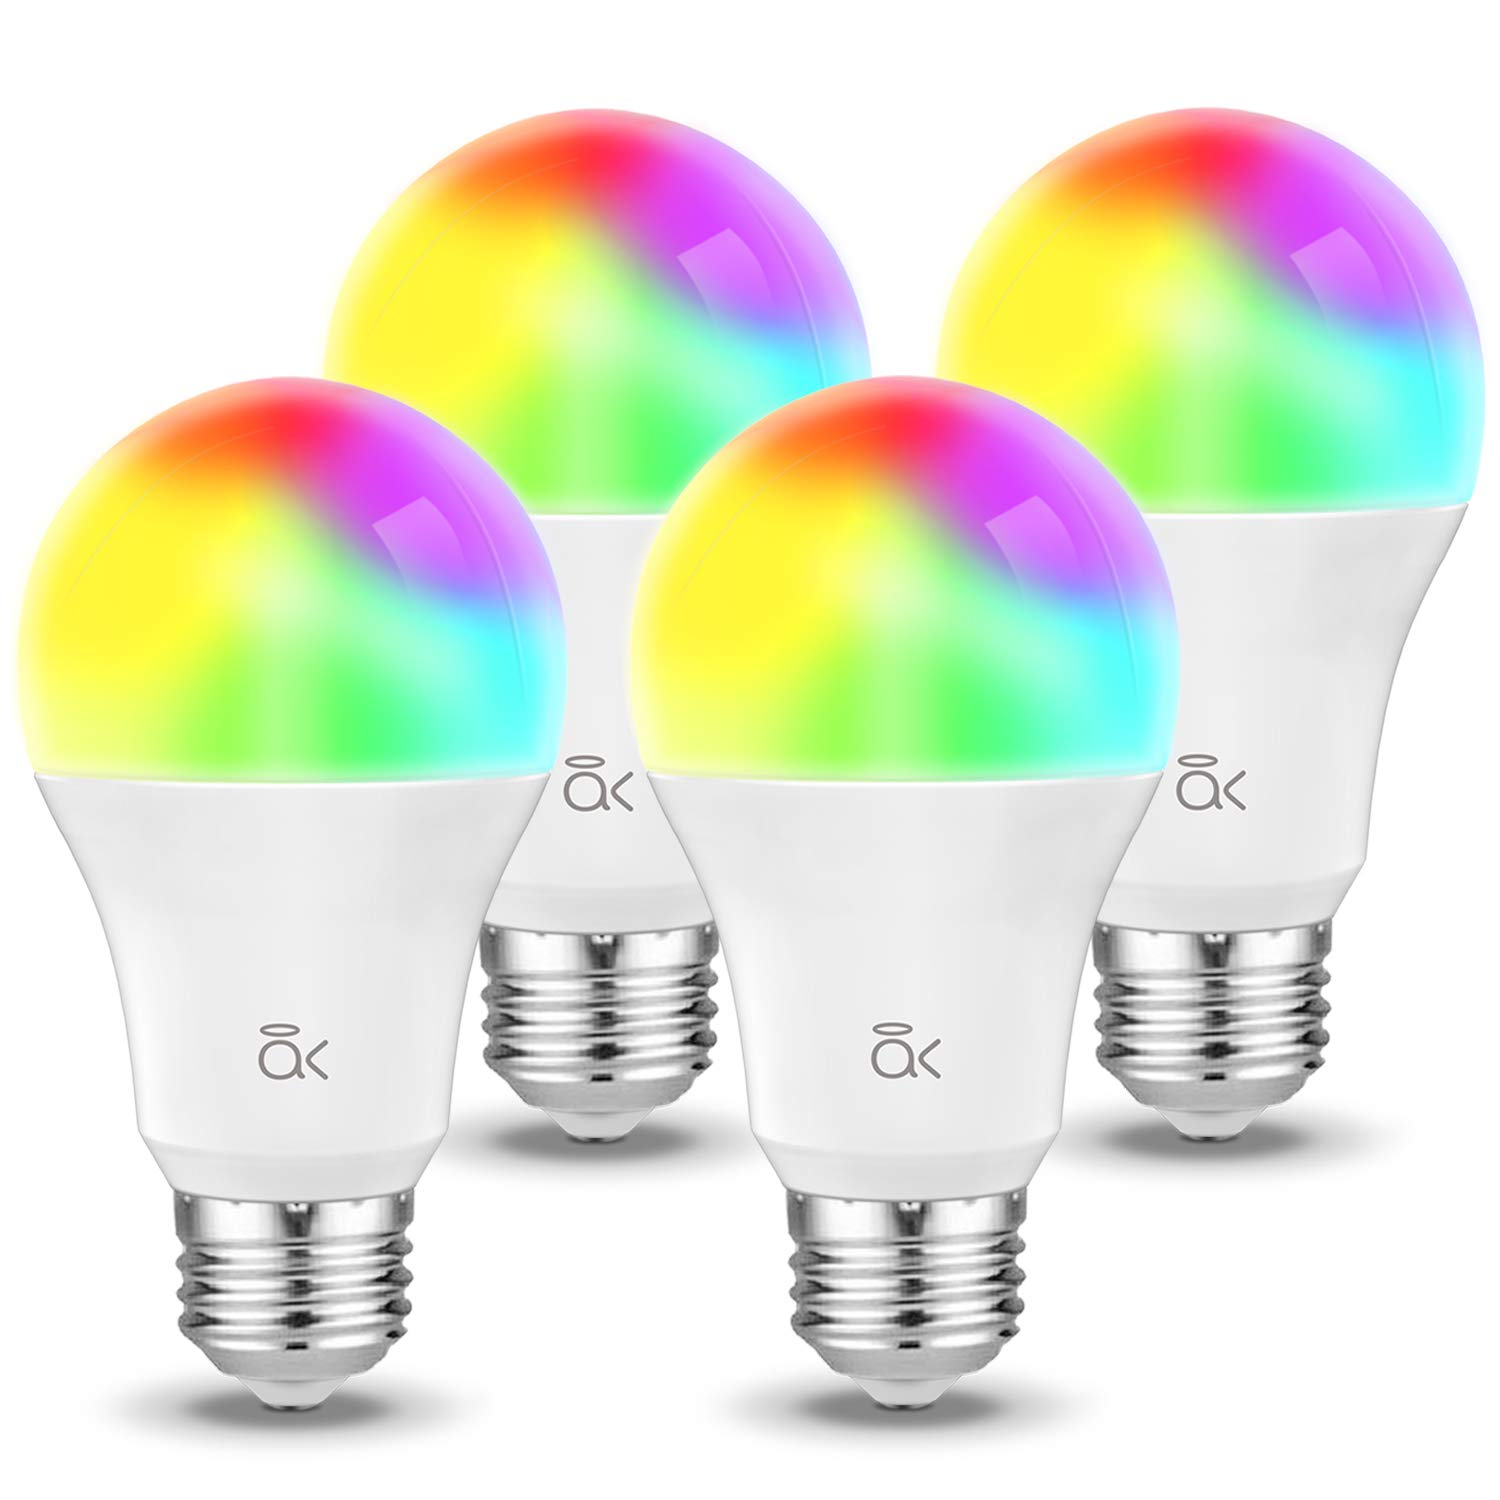 Smart Bulb, AL Above Lights Dimmable E26 9W Wi-Fi LED Light Bulb, Soft White (2700K), 60W Equivalent, 810 LM, RGB+W, Works with Amazon Alexa, Echo, Google Assistant and IFTTT, ETL Listed - 4 Packs